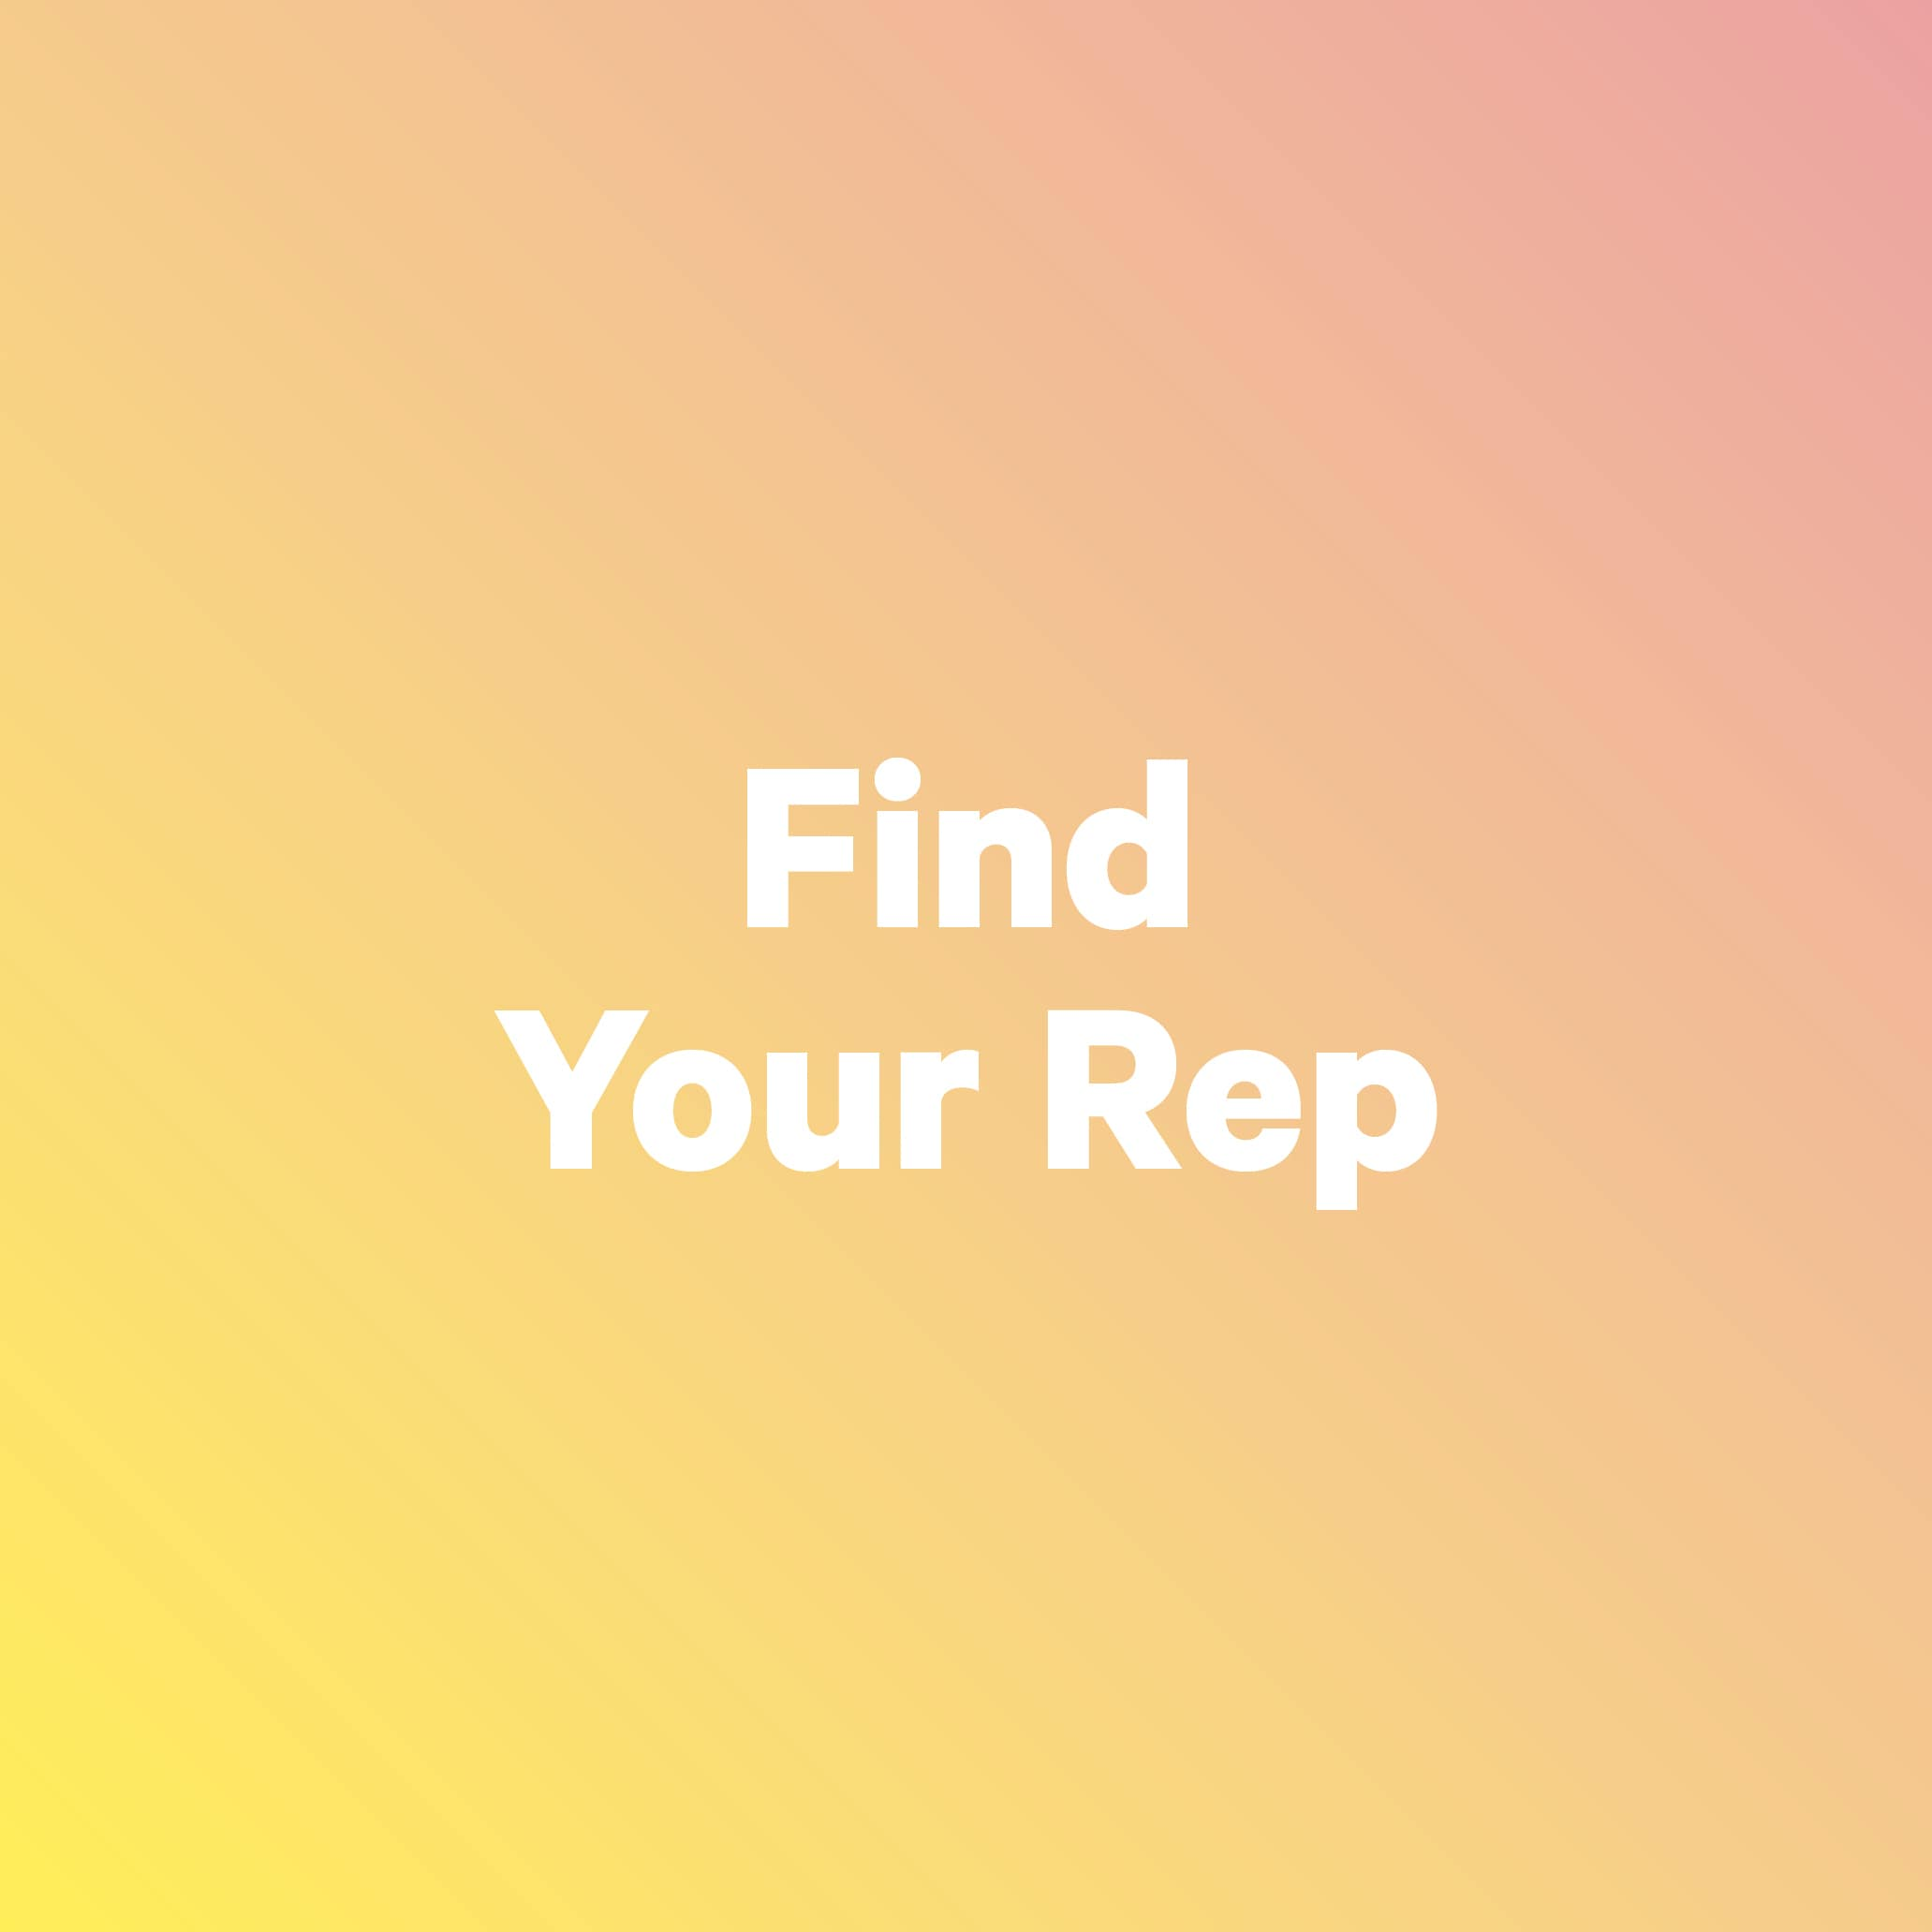 Find your rep